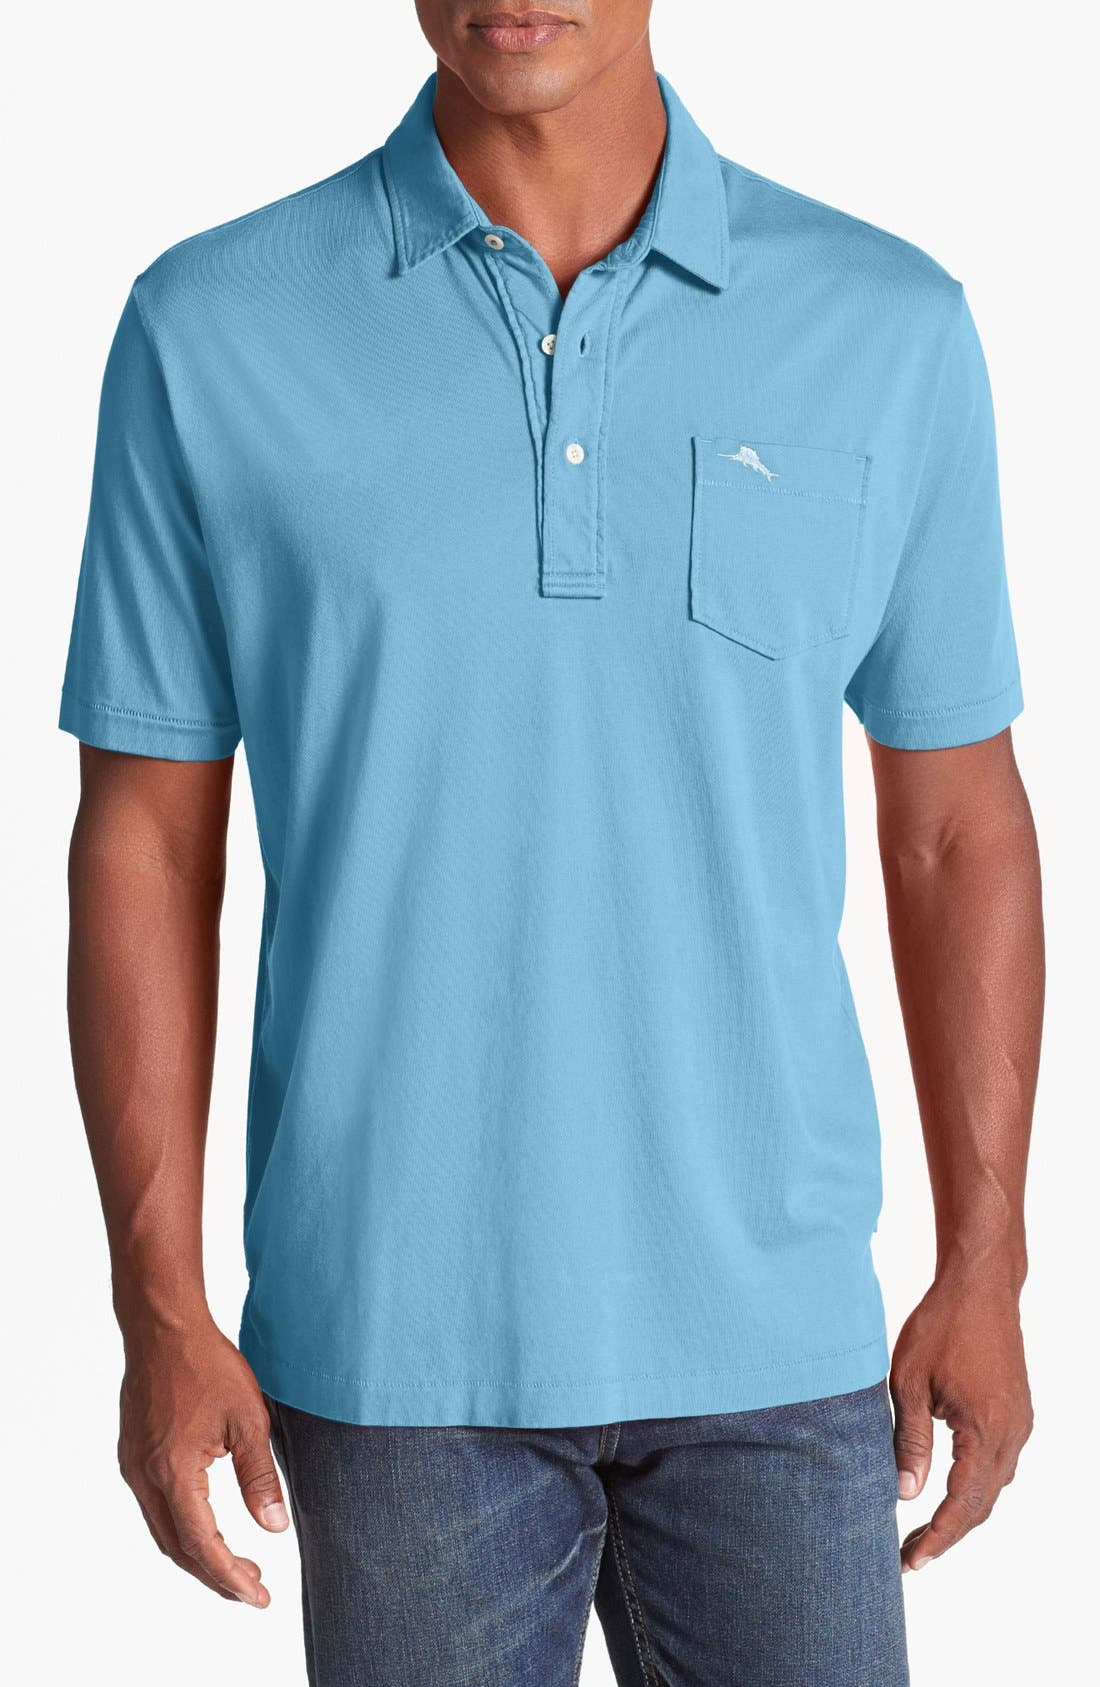 Alternate Image 1 Selected - Tommy Bahama 'Bali Shore' Polo